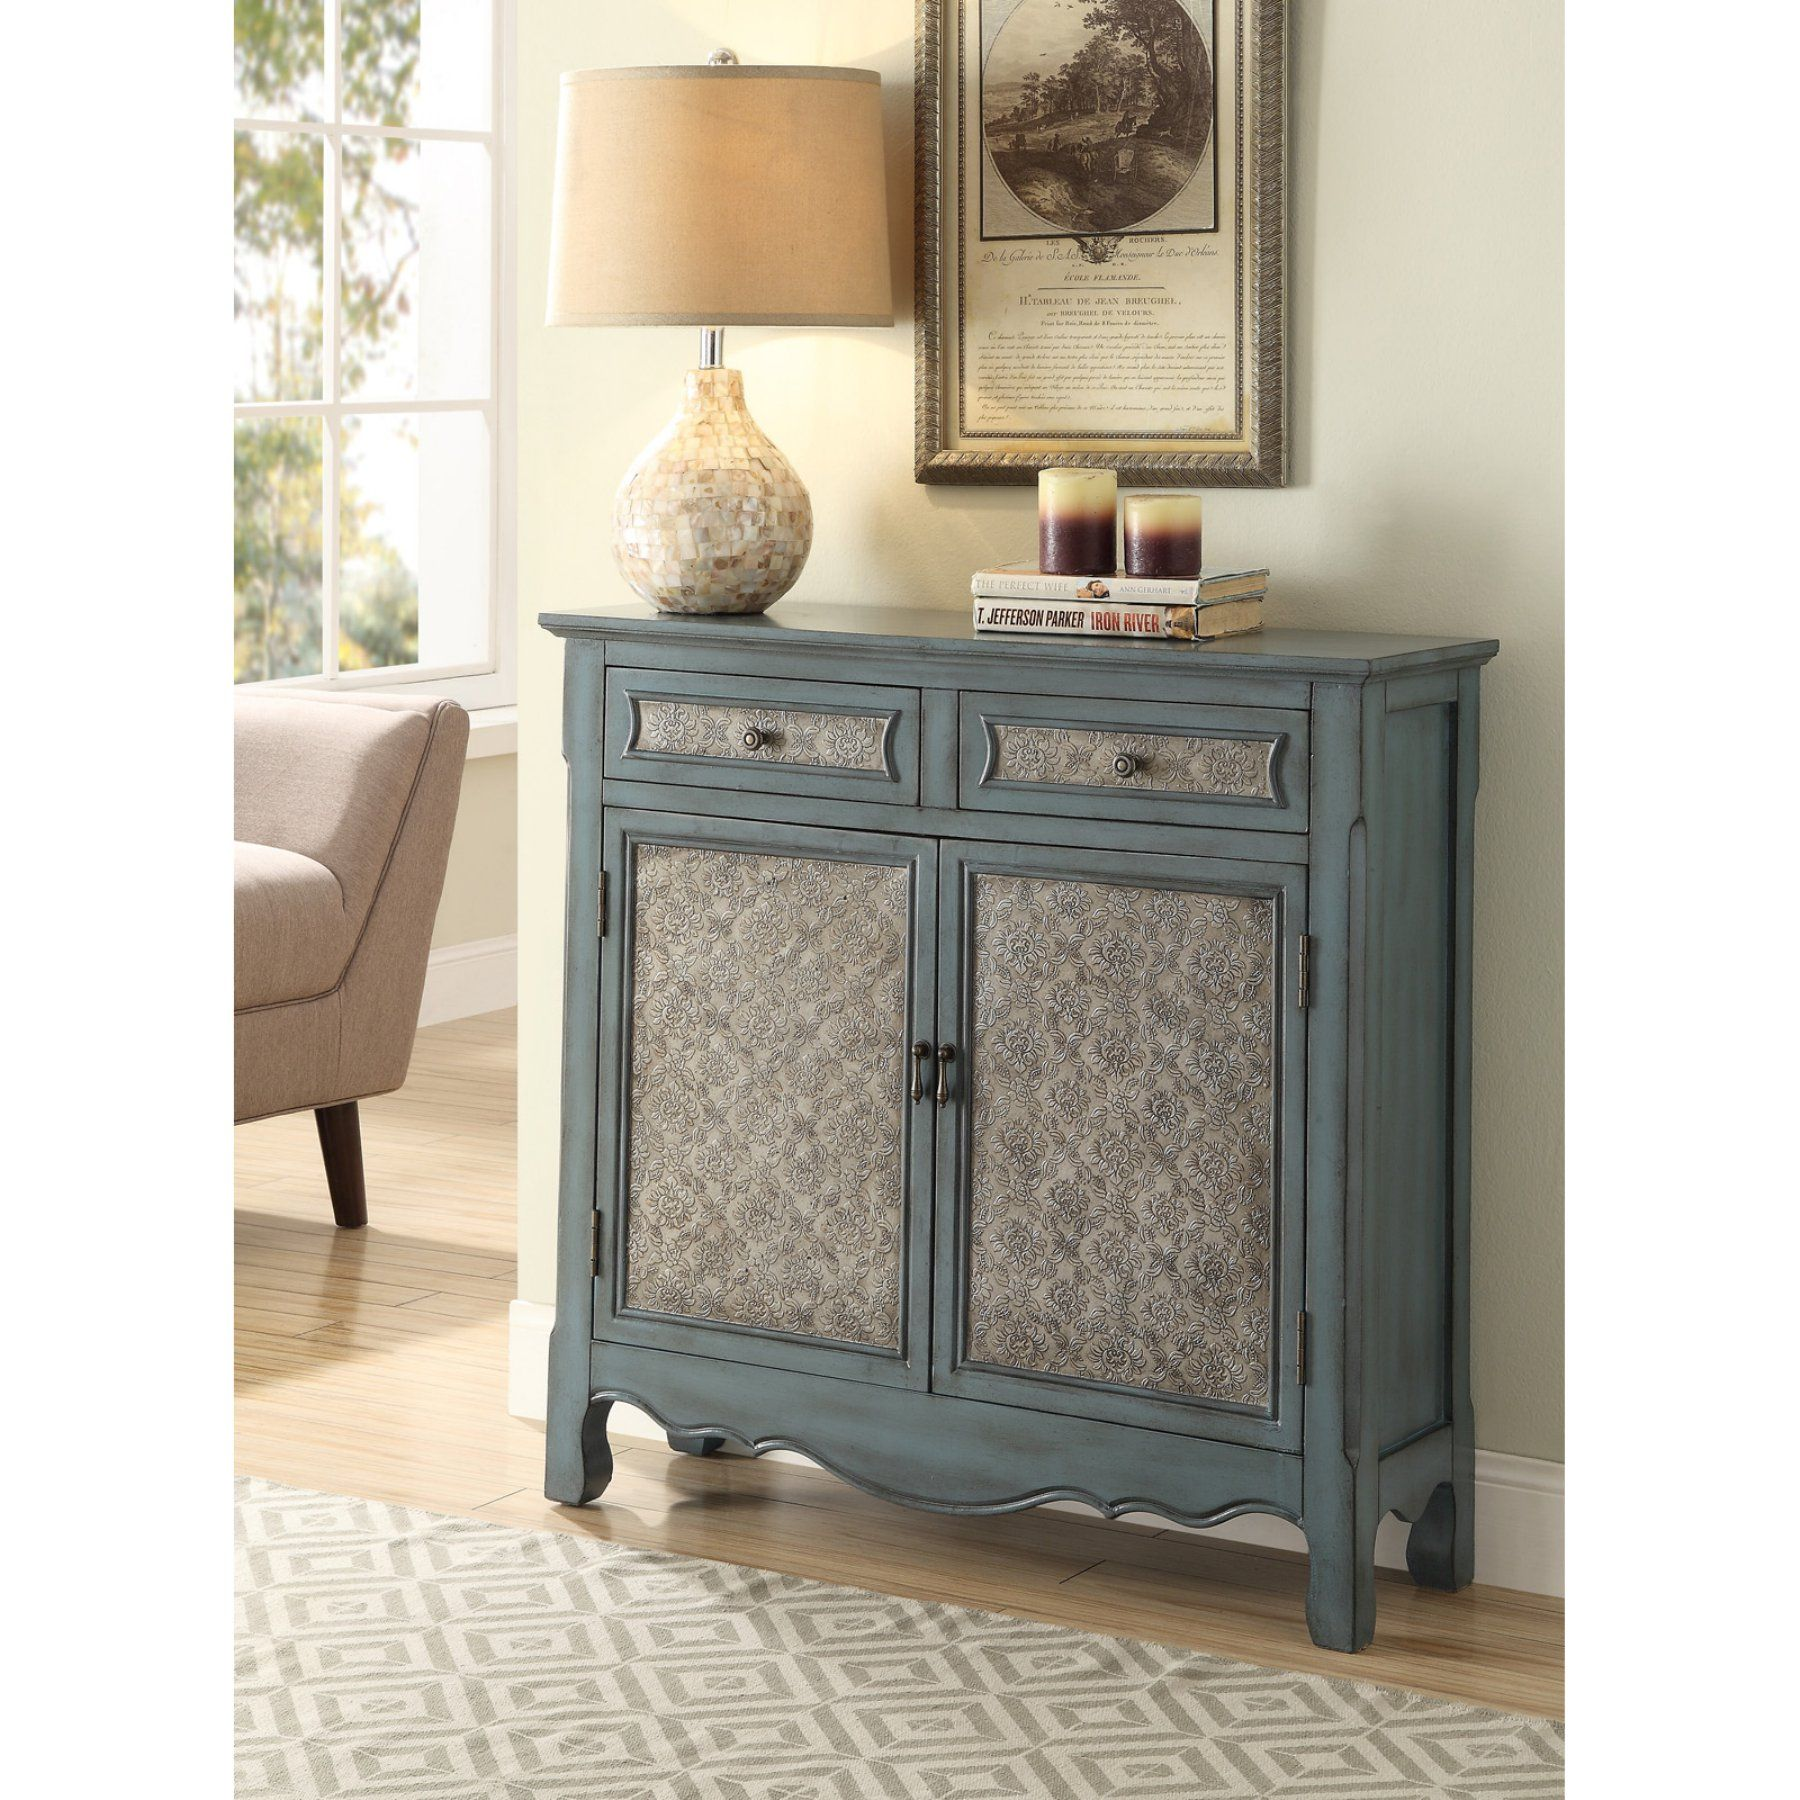 Acme Furniture Winchell Antique Blue Console Table 97245